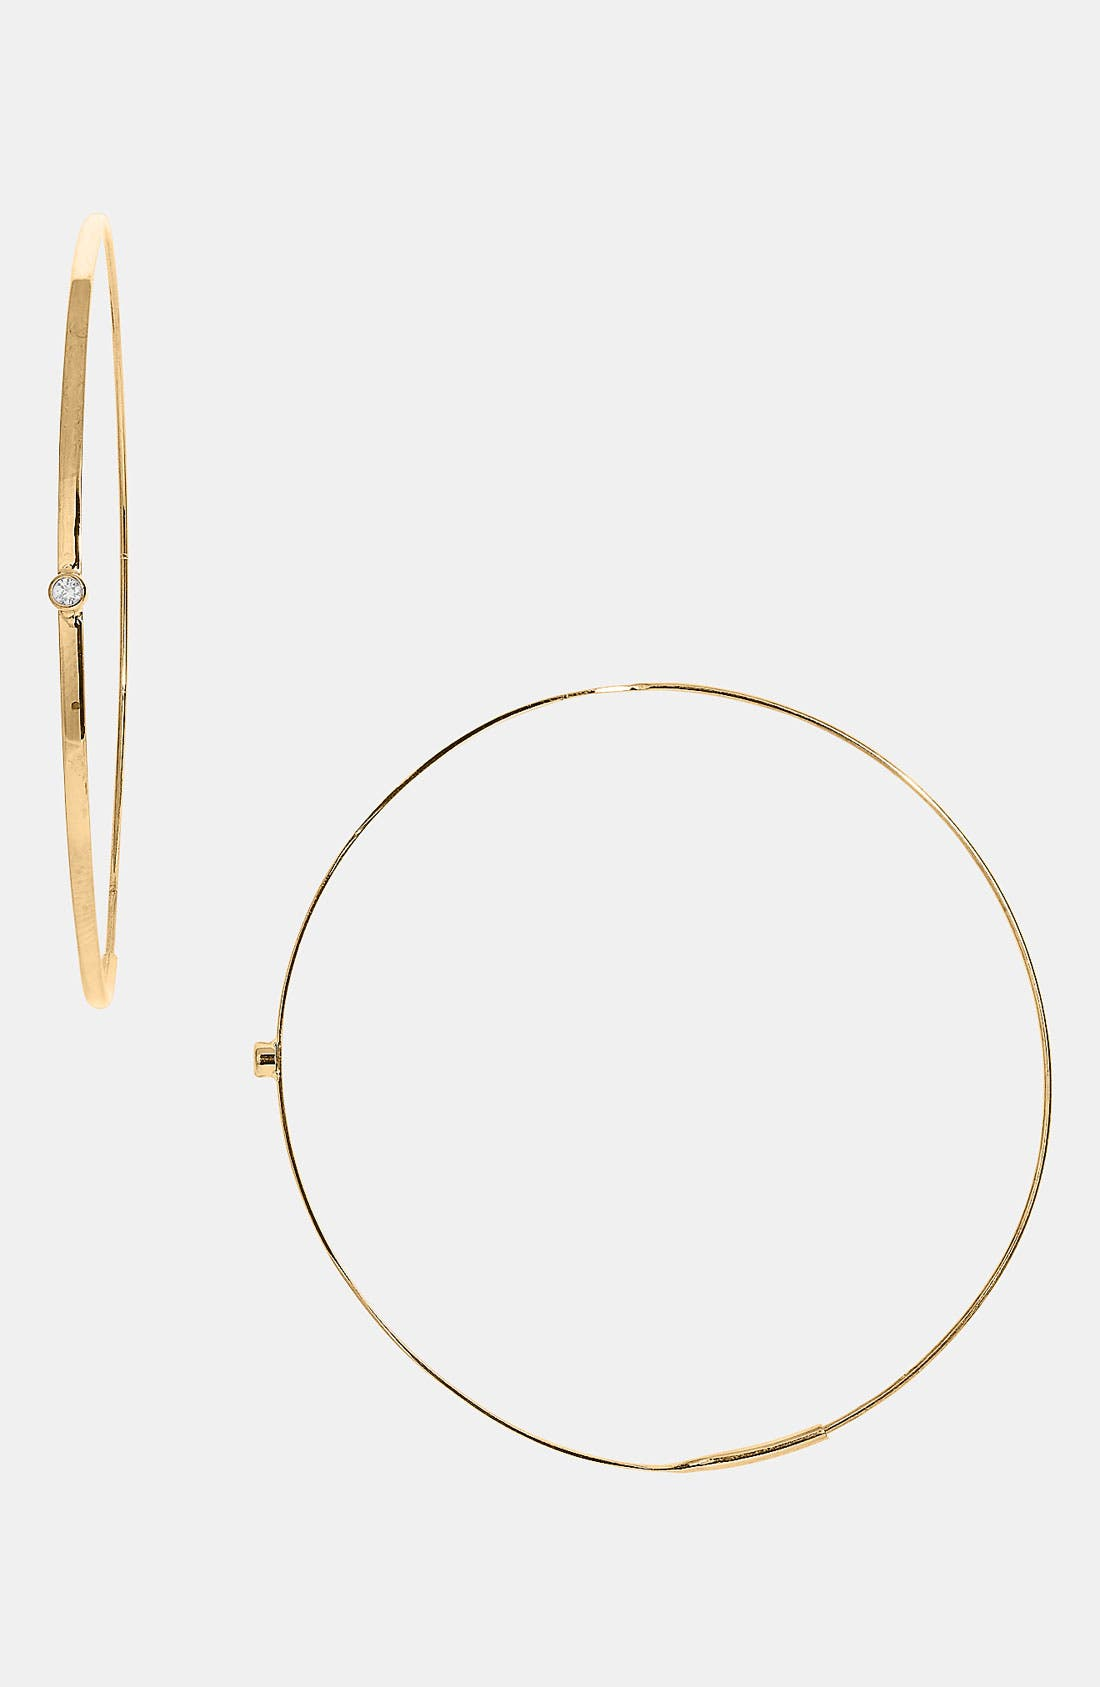 Main Image - Lana Jewelry 'Medium Magic' Diamond Hoop Earrings (Nordstrom Exclusive)